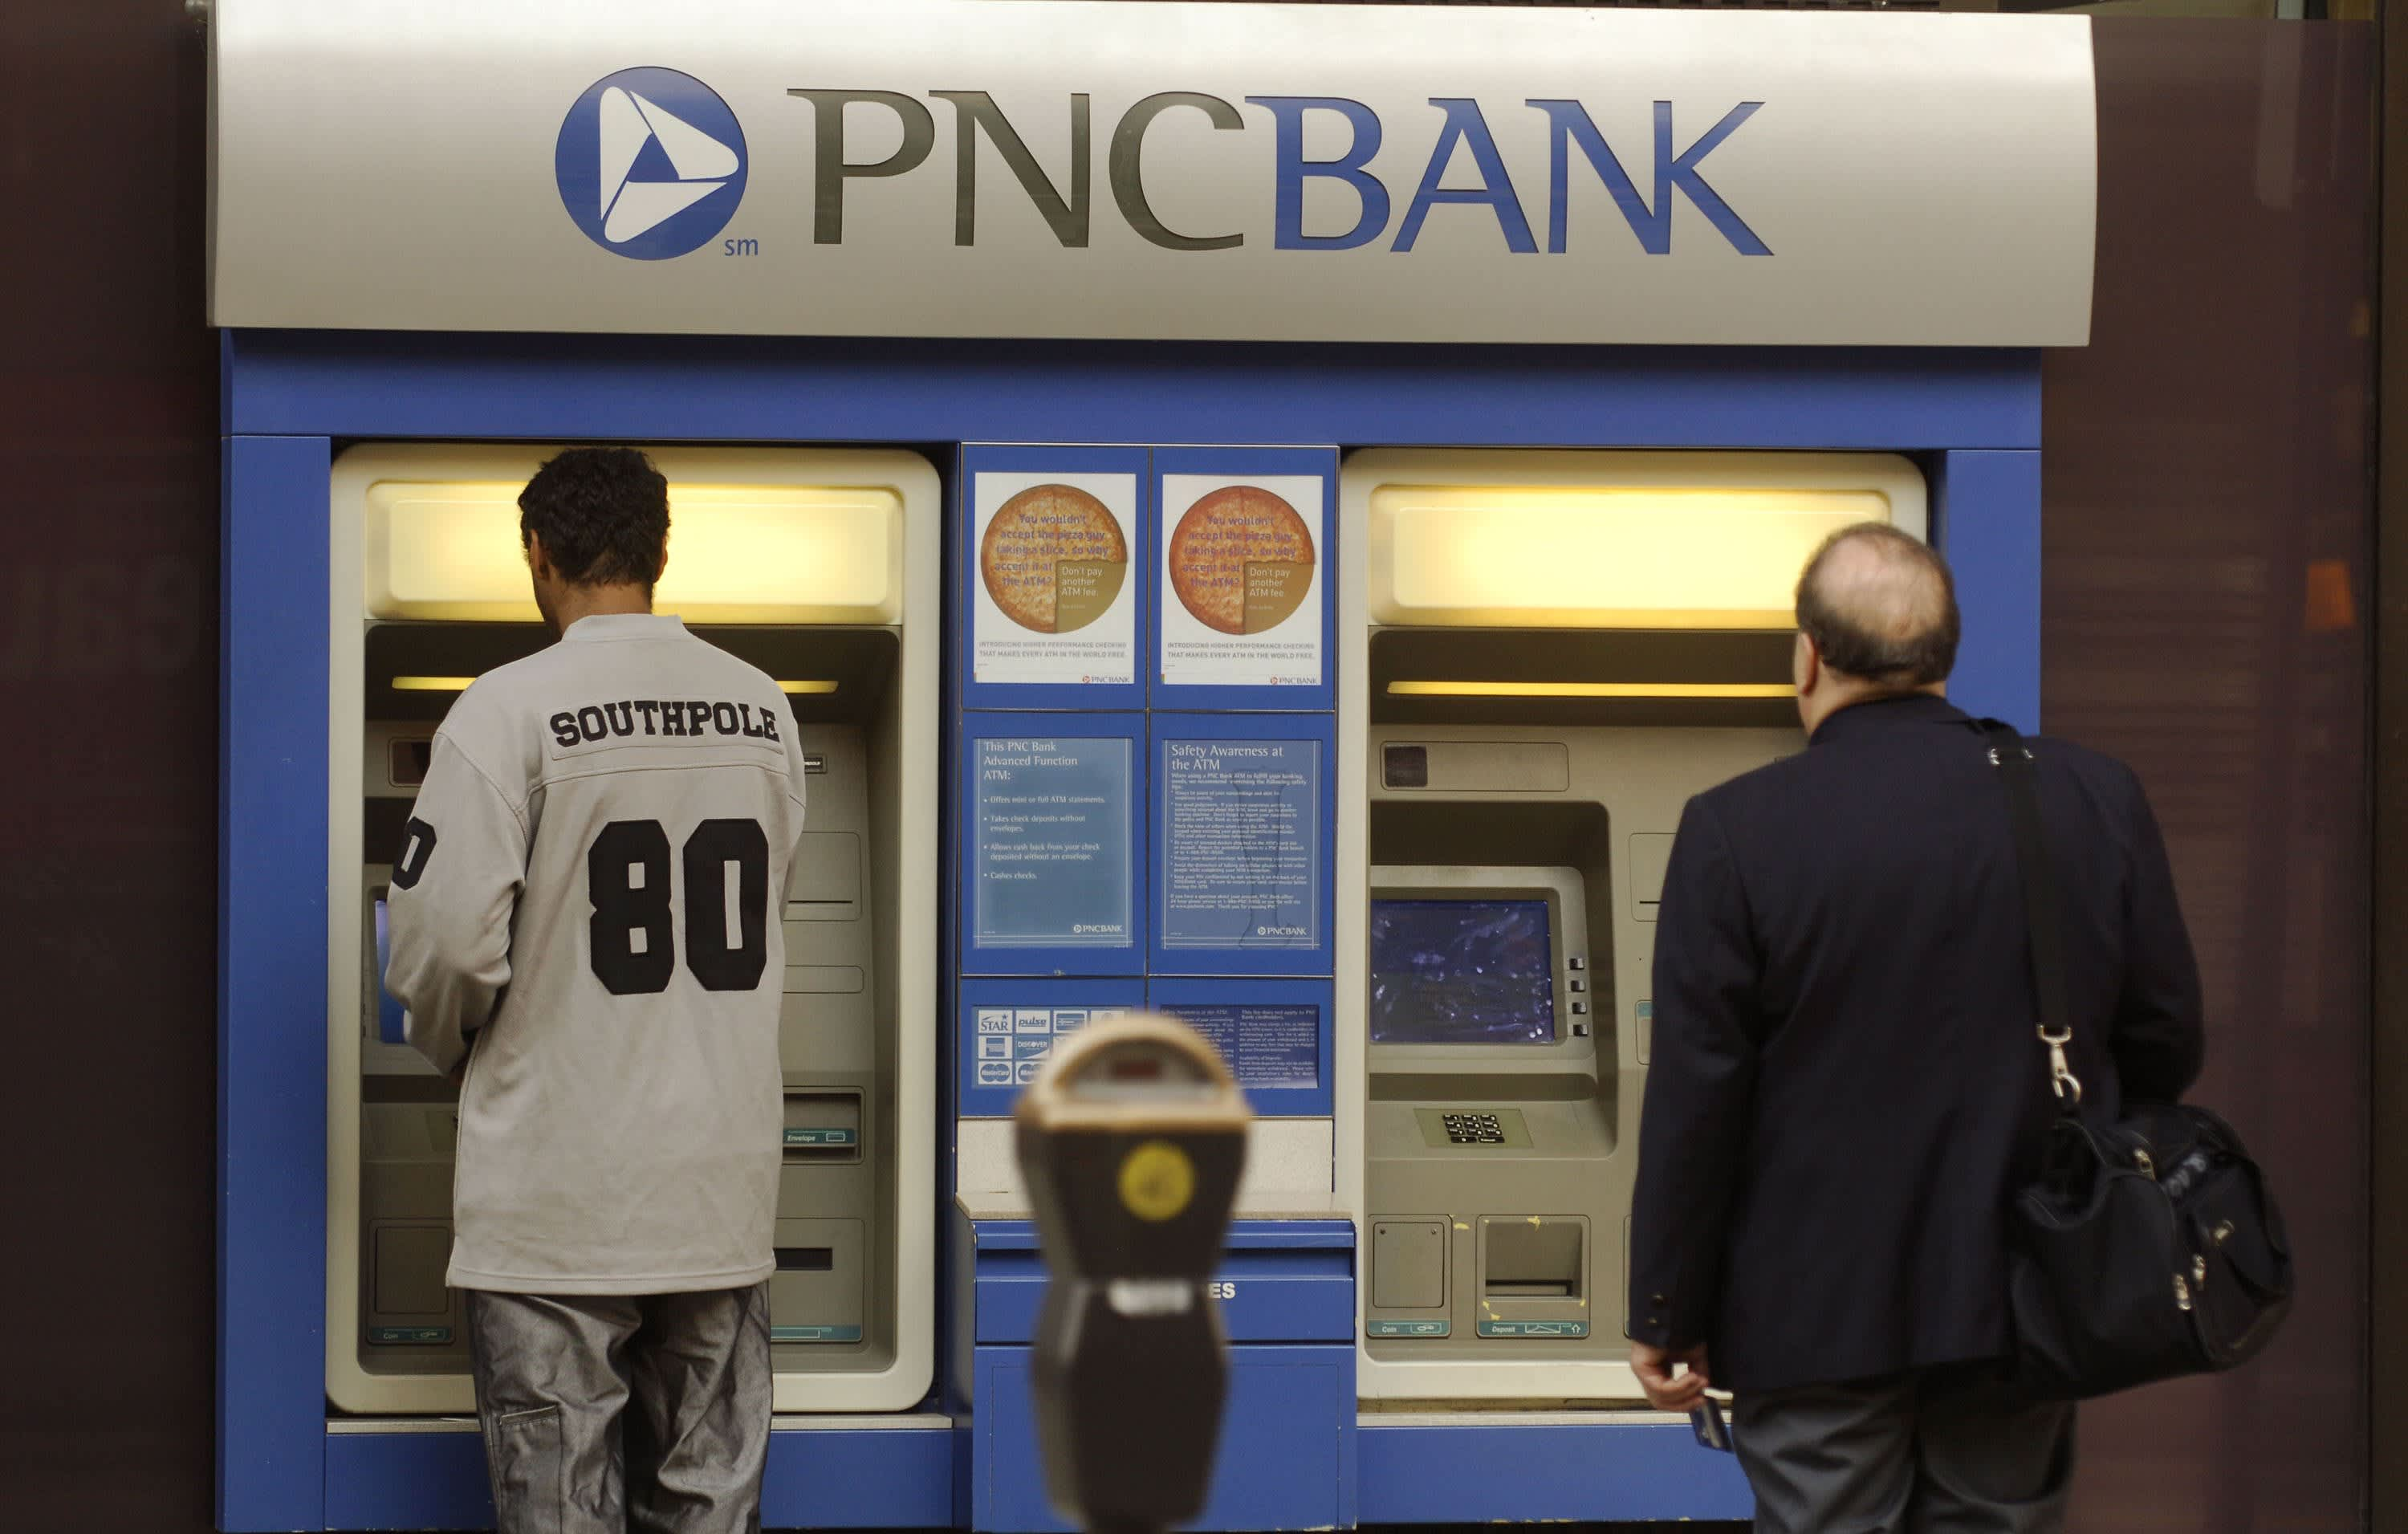 Subs: PNC Bank PNC Financial Services Pittsburgh